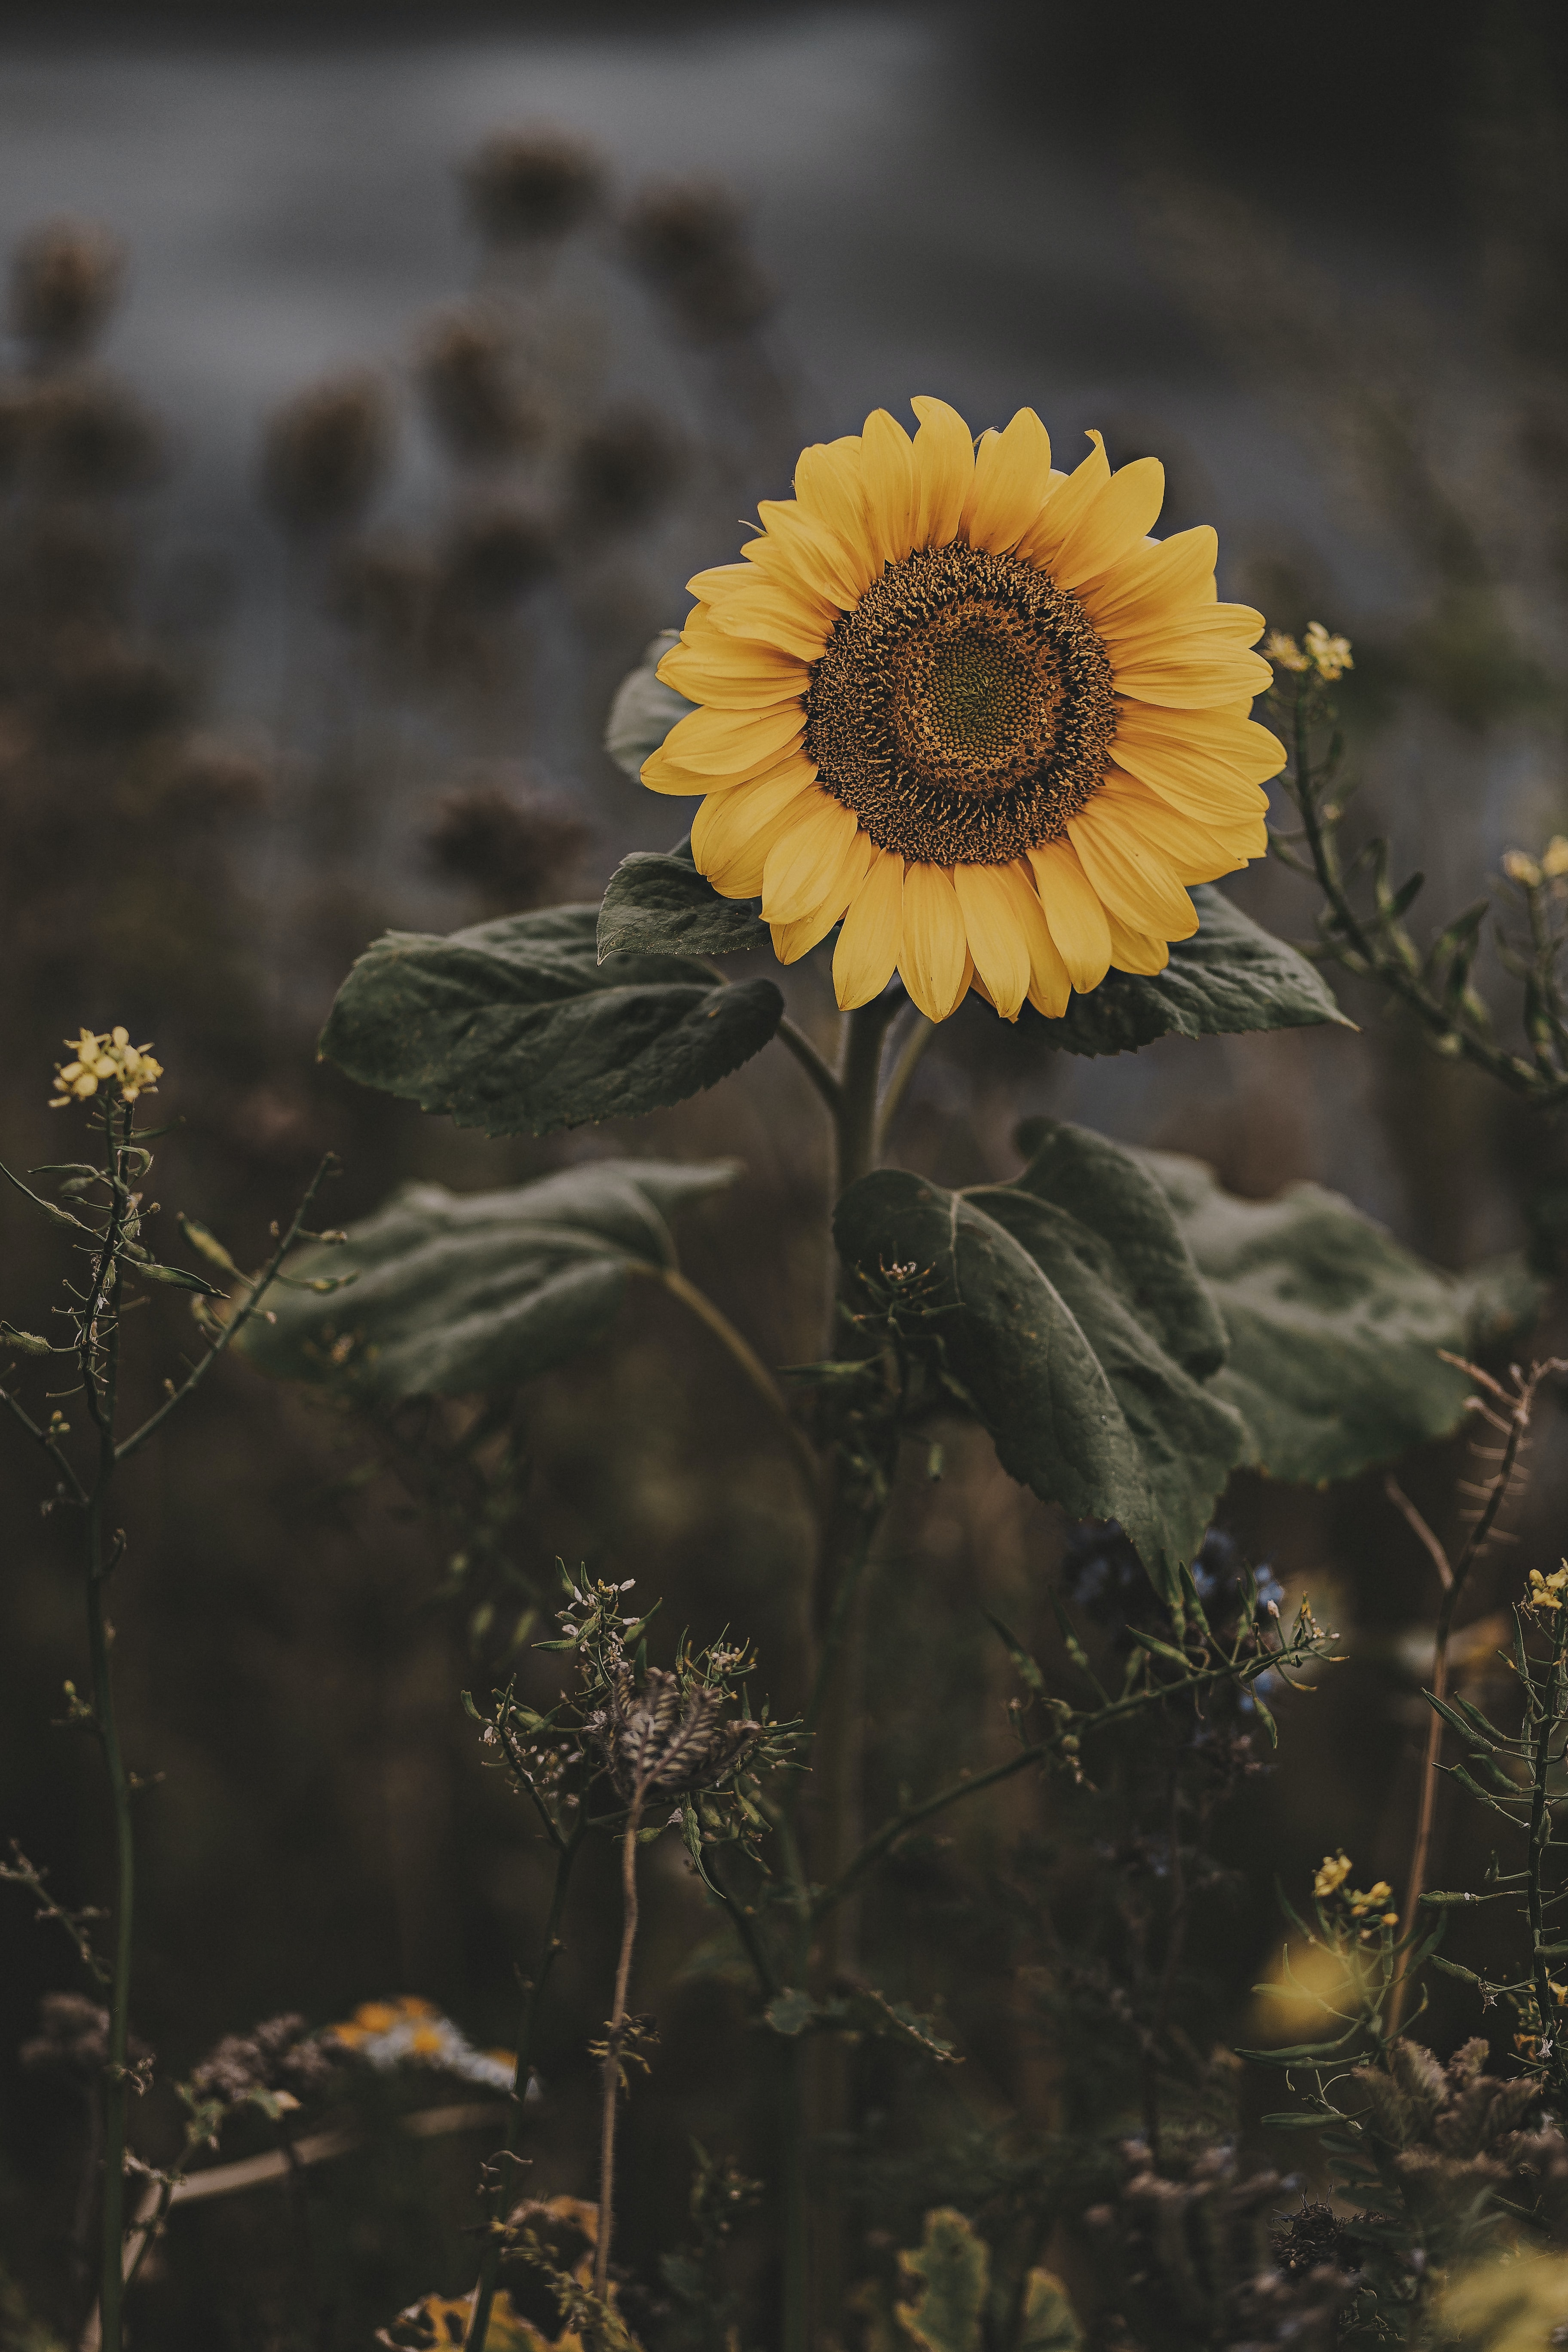 selective focus photography of sunfloer